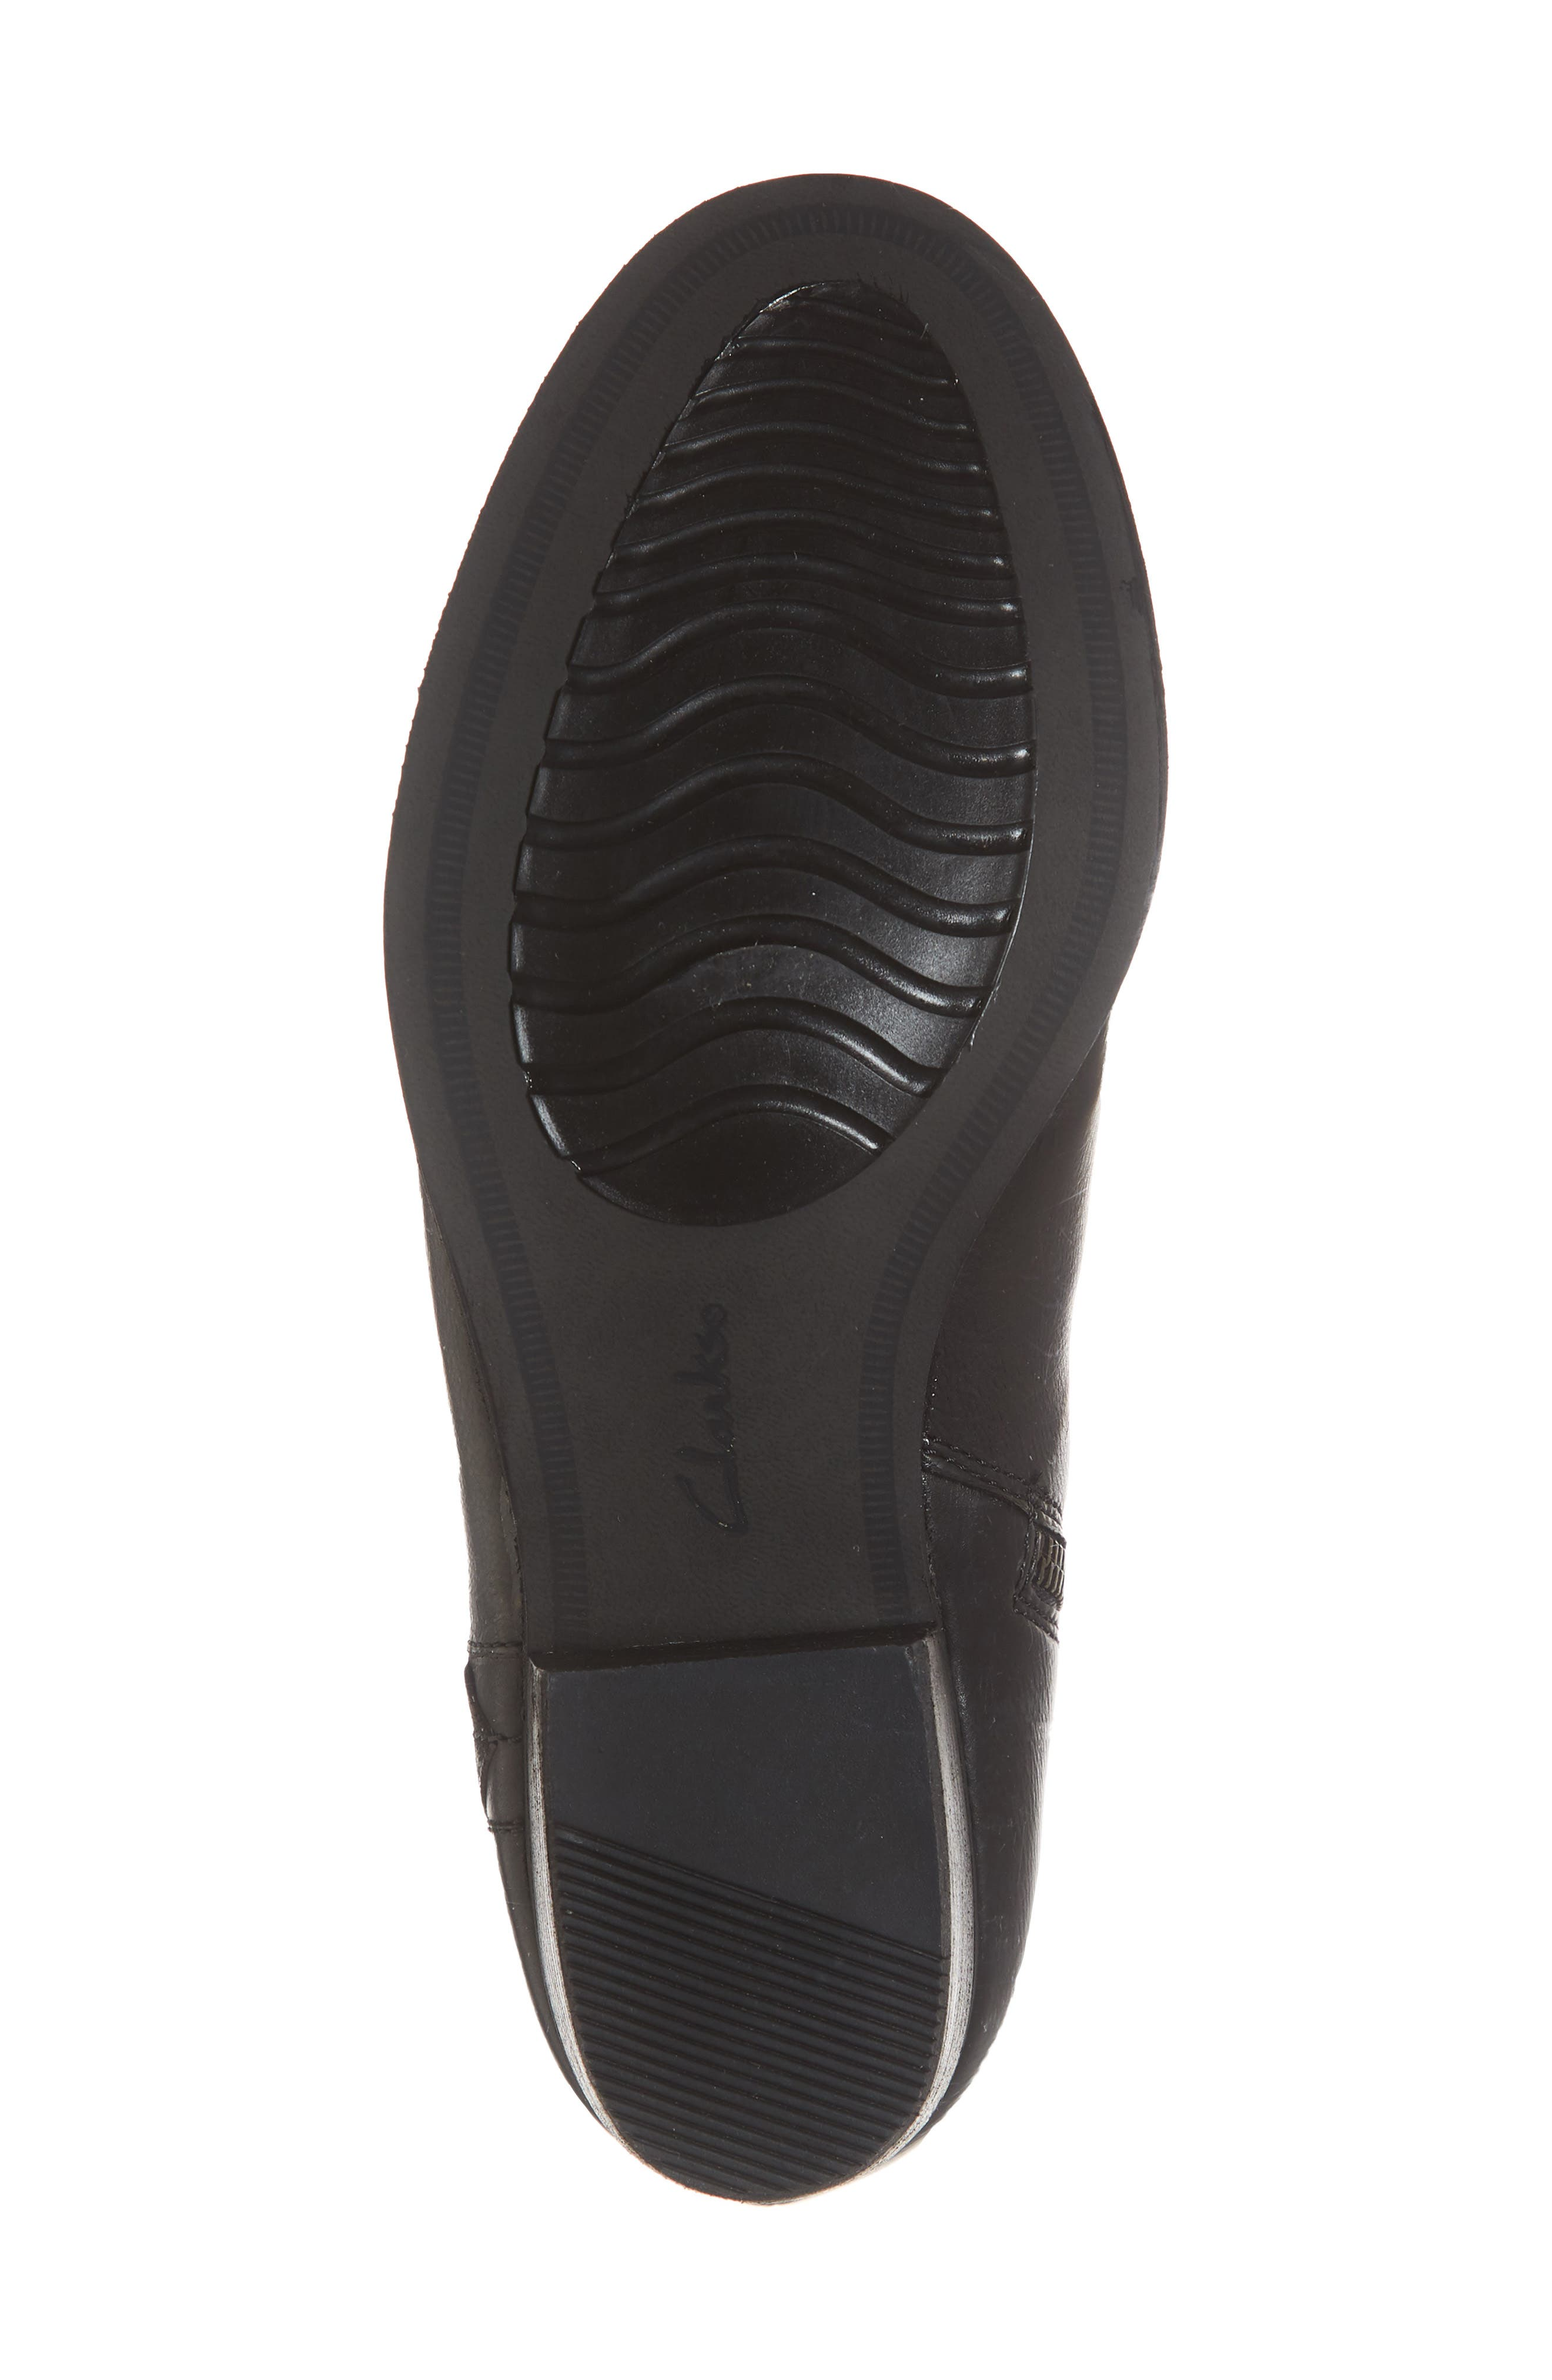 CLARKS<SUP>®</SUP>, Maypearl Fawn Bootie, Alternate thumbnail 6, color, BLACK LEATHER